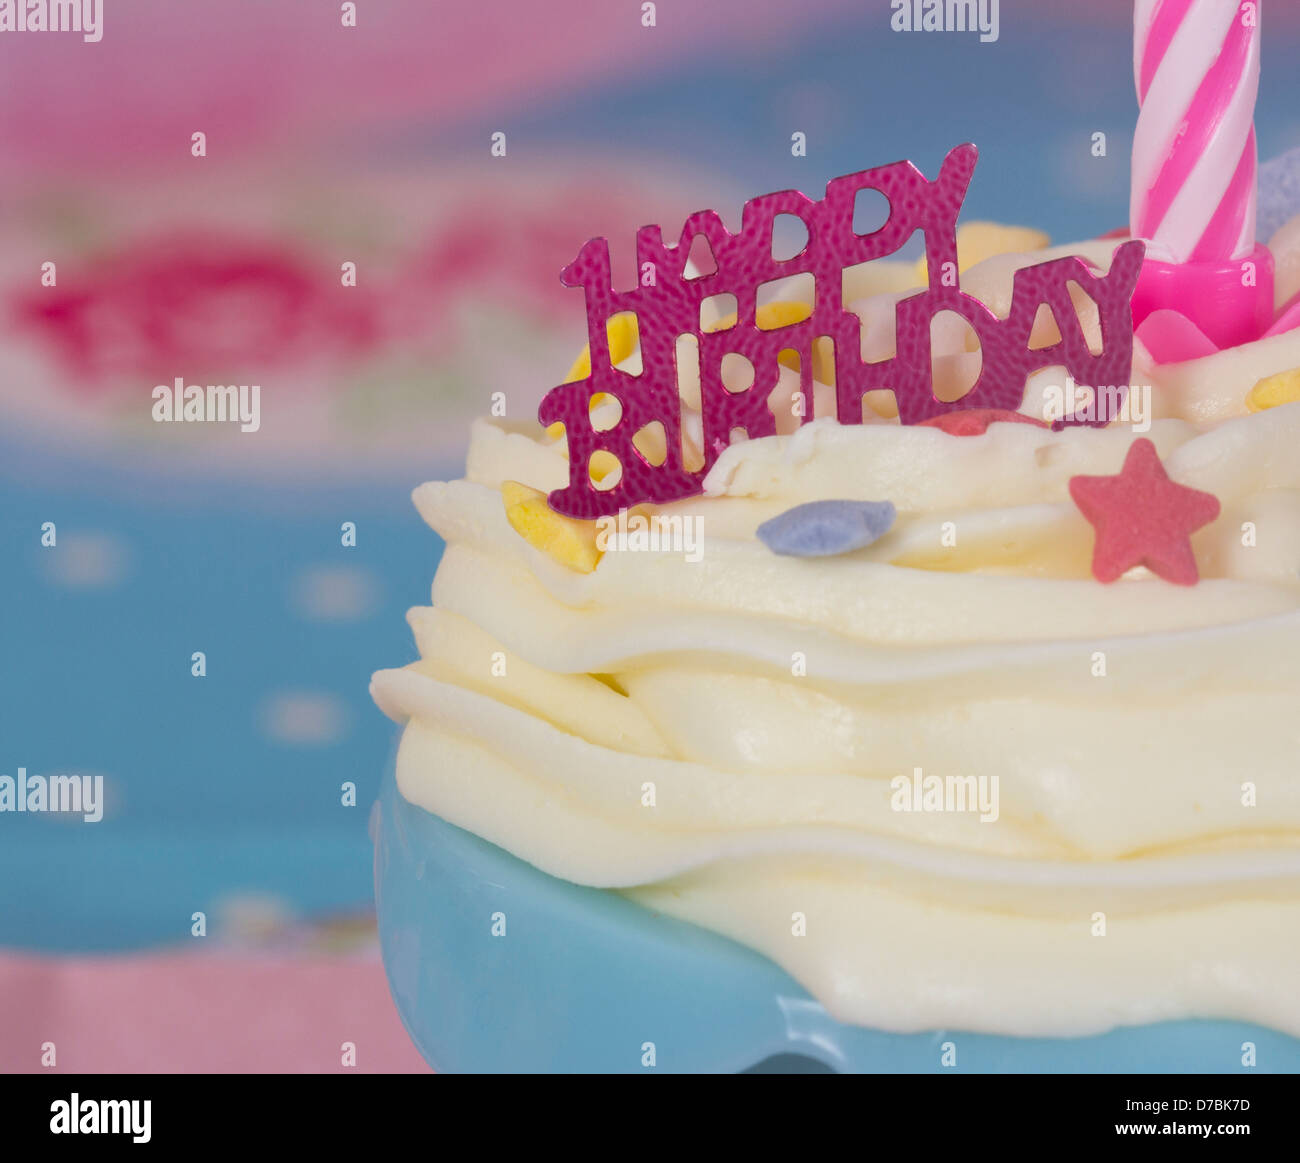 Happy Birthday Cupcake with white icing blue case and pink candle